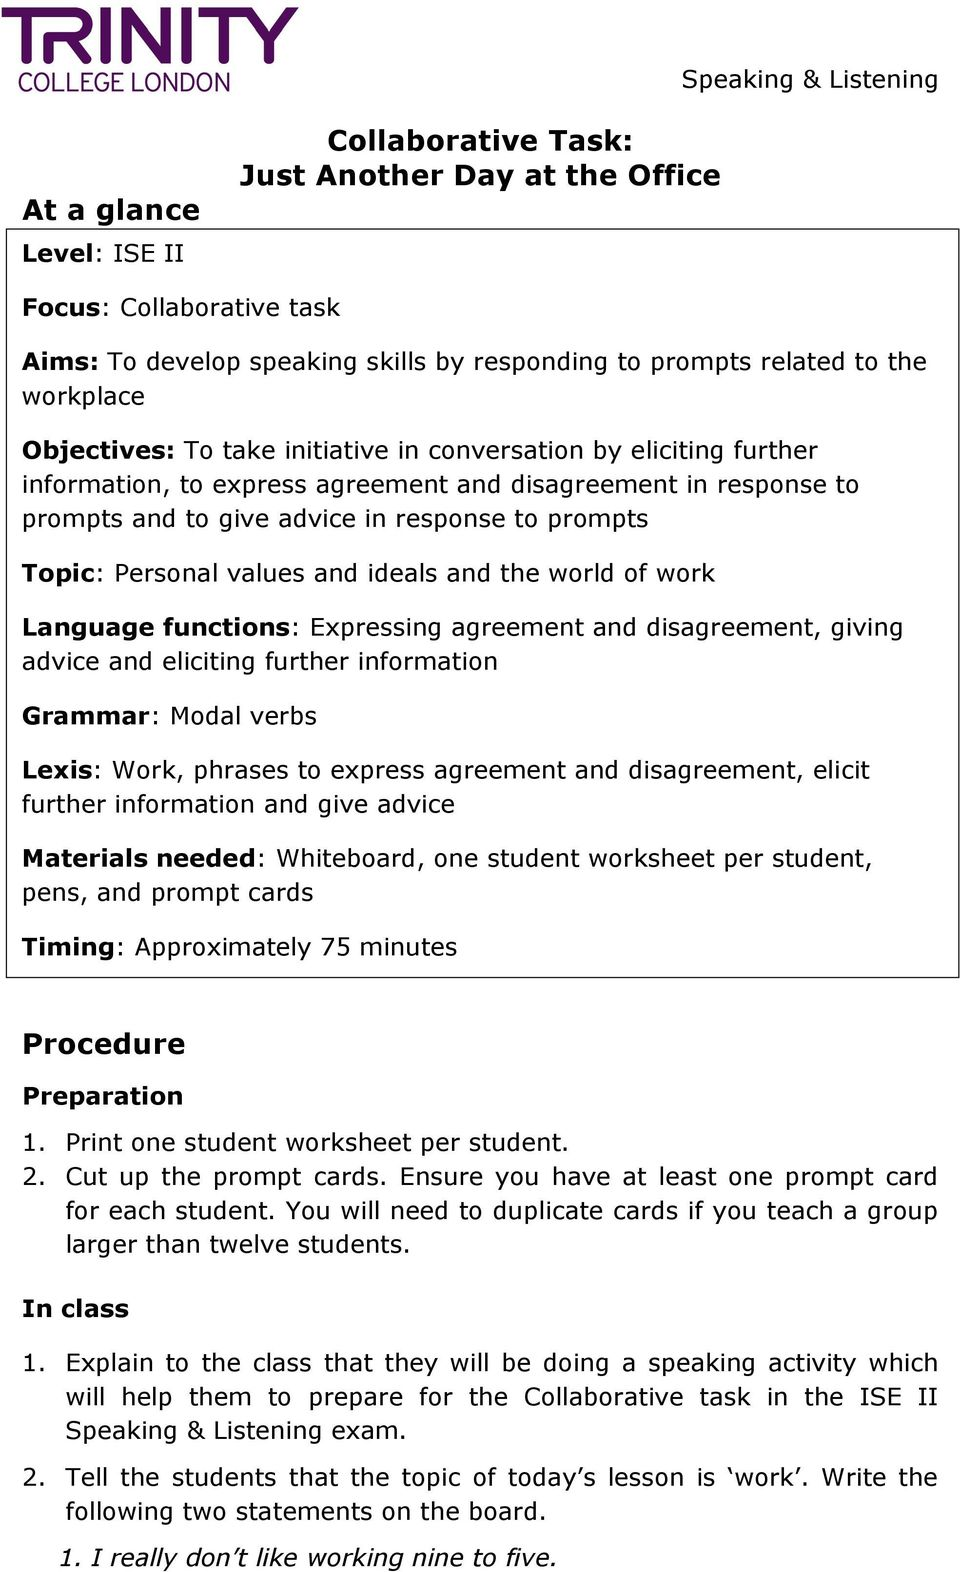 ideals and the world of work Language functions: Expressing agreement and disagreement, giving advice and eliciting further information Grammar: Modal verbs Lexis: Work, phrases to express agreement